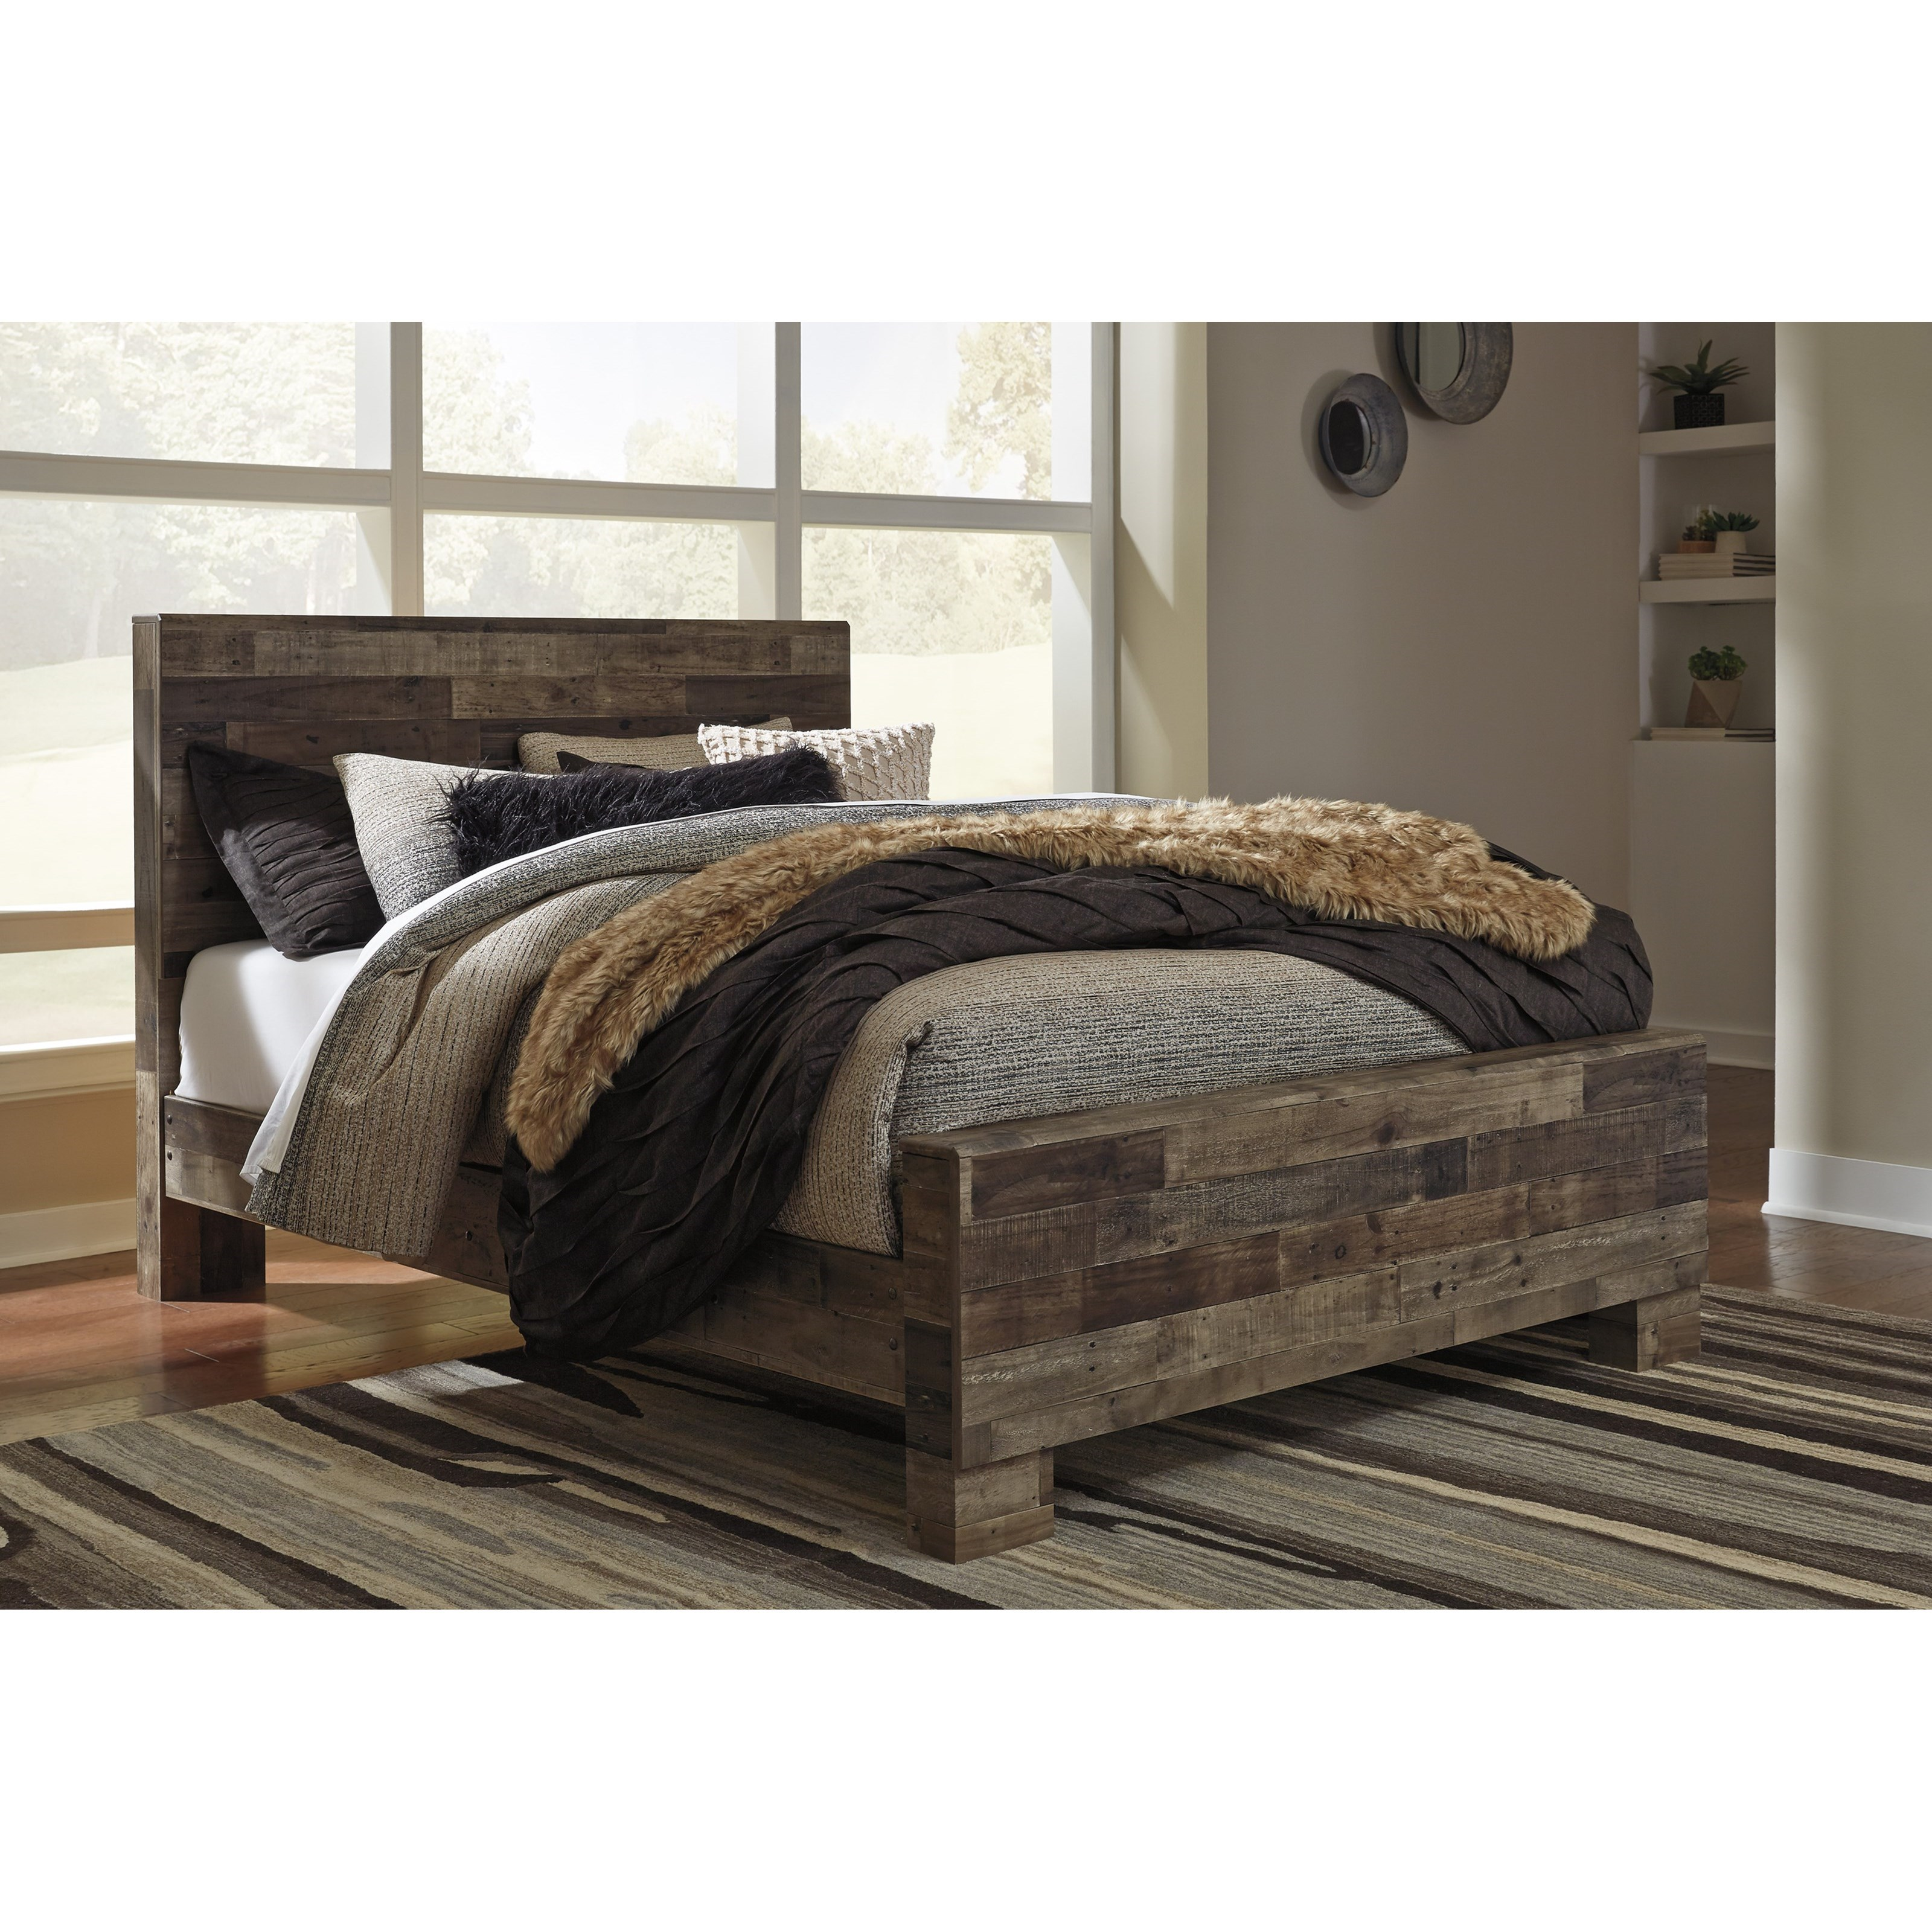 Benchcraft By Ashley Derekson Rustic Modern Queen Panel Bed Royal Furniture Panel Beds